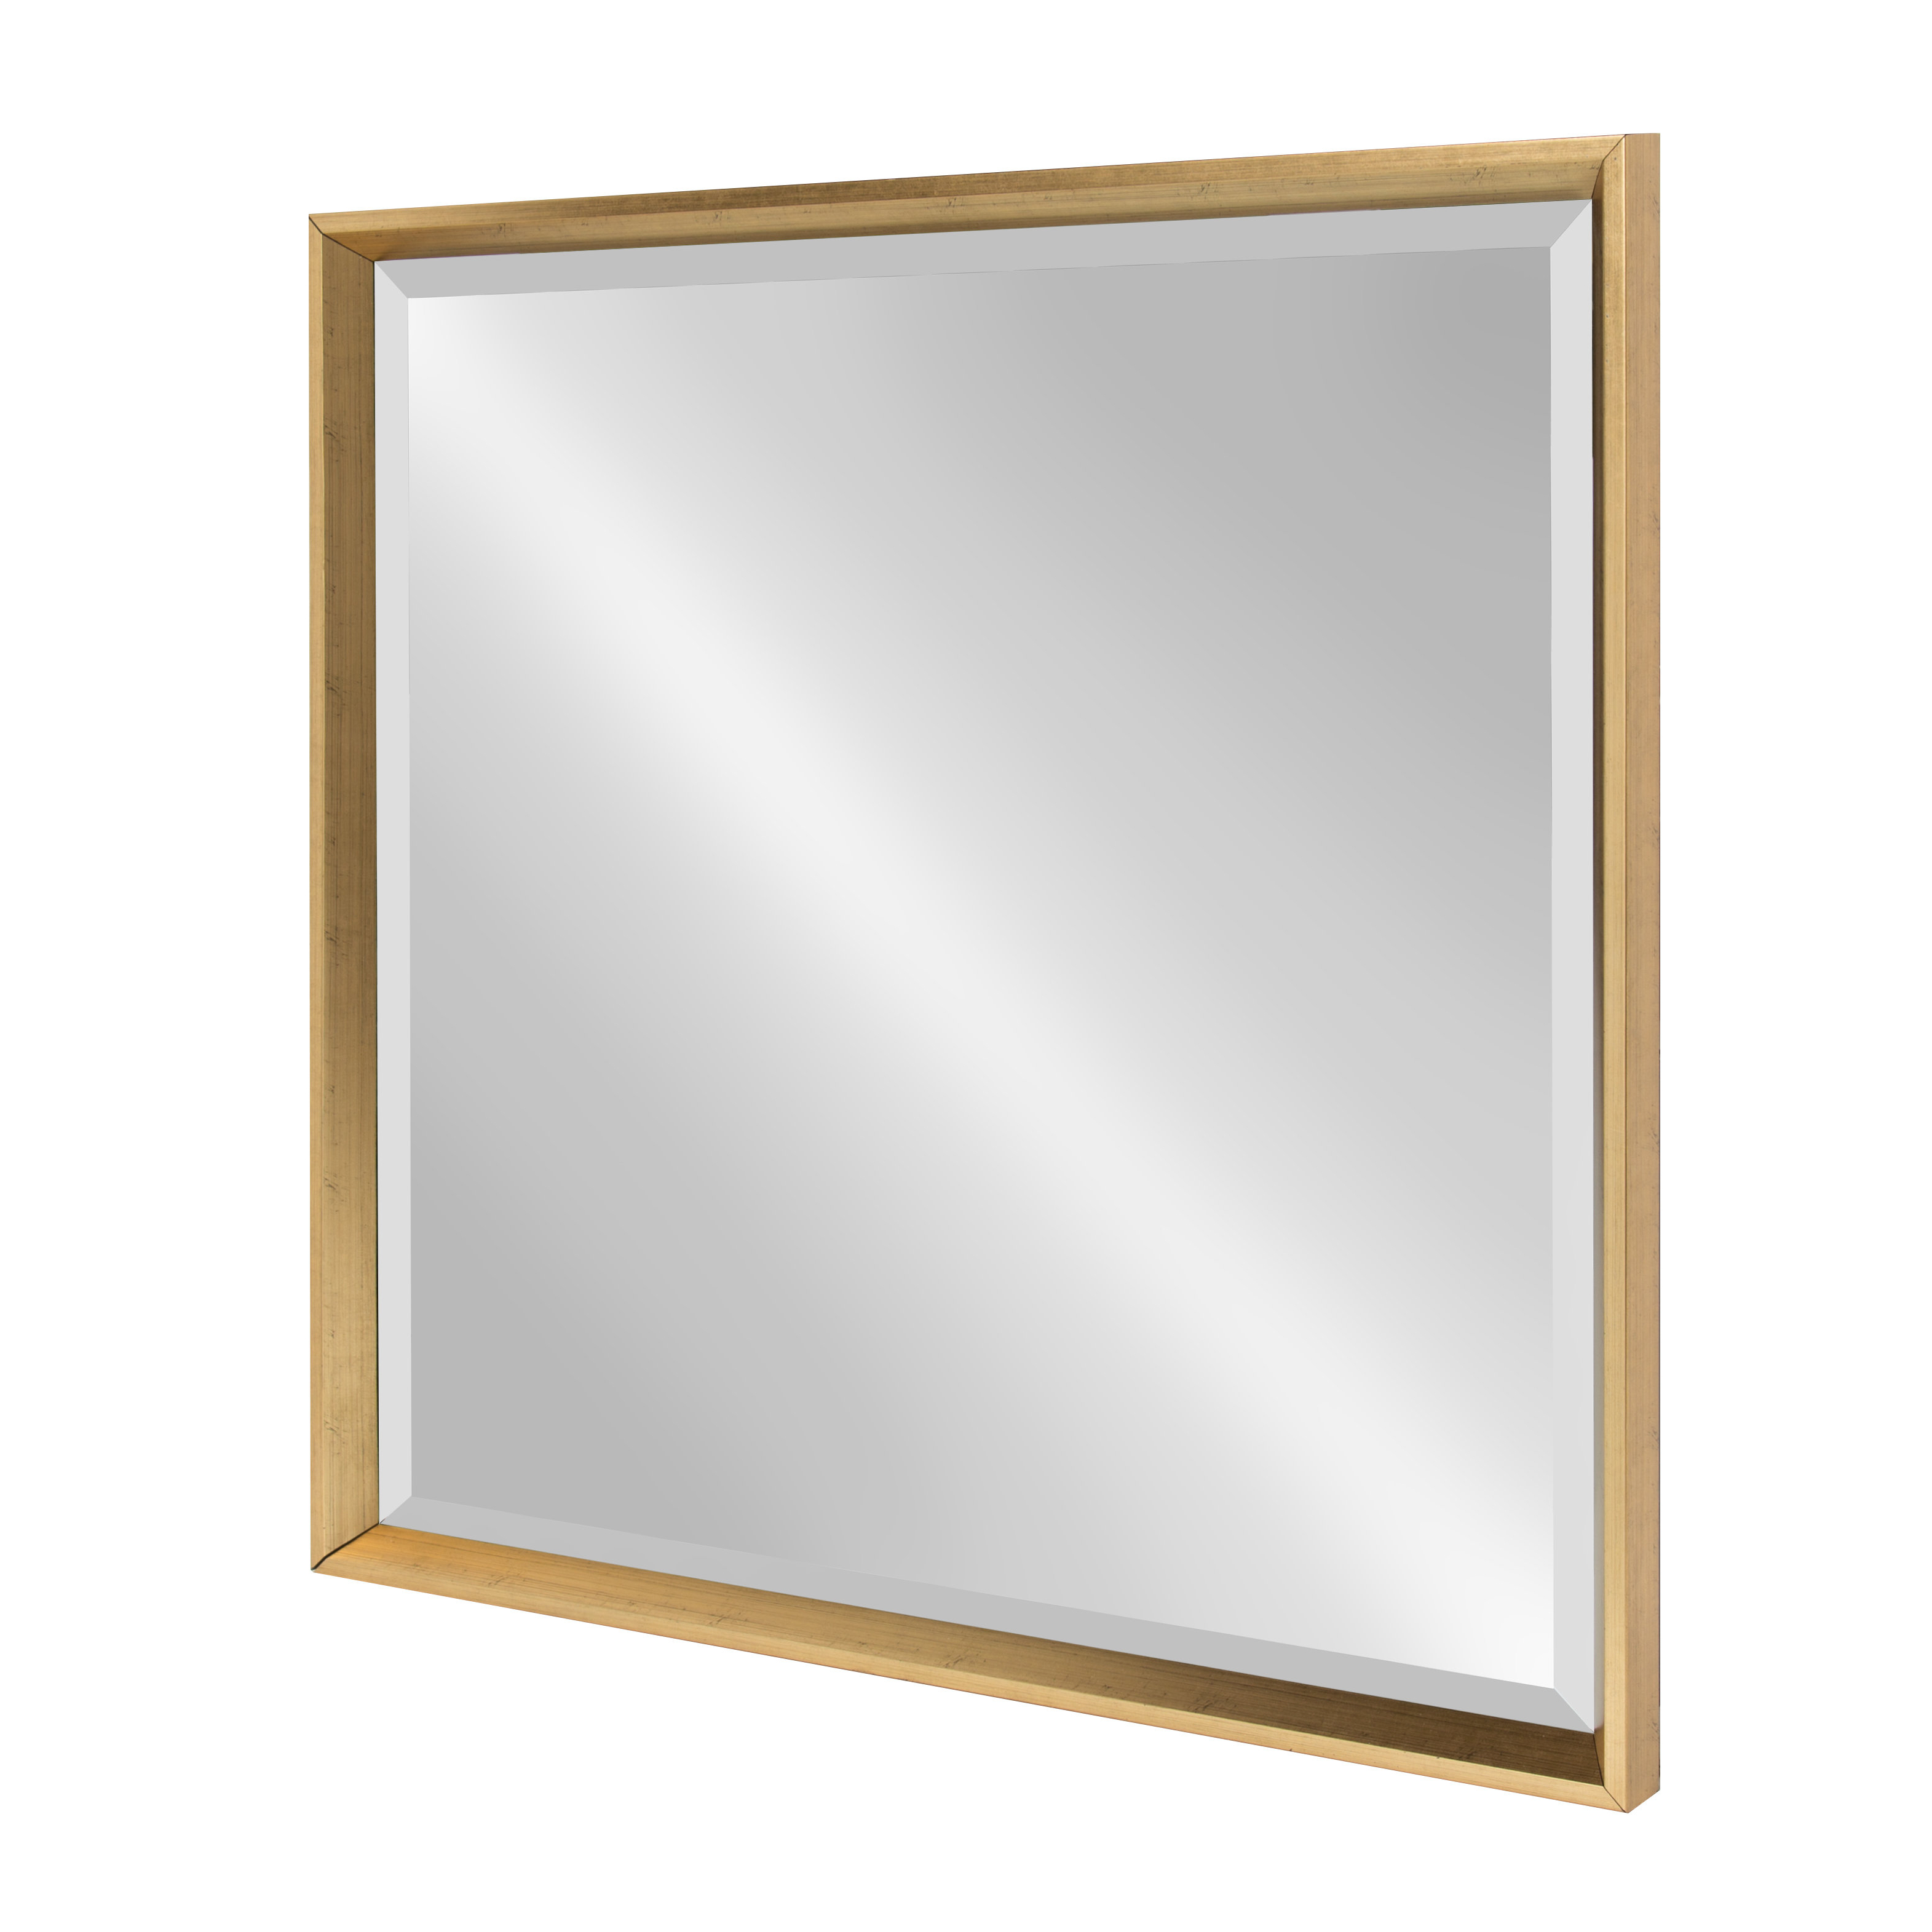 Greyleigh Sundown Framed Glam Beveled Accent Mirror For Well Known Lugo Rectangle Accent Mirrors (View 11 of 20)